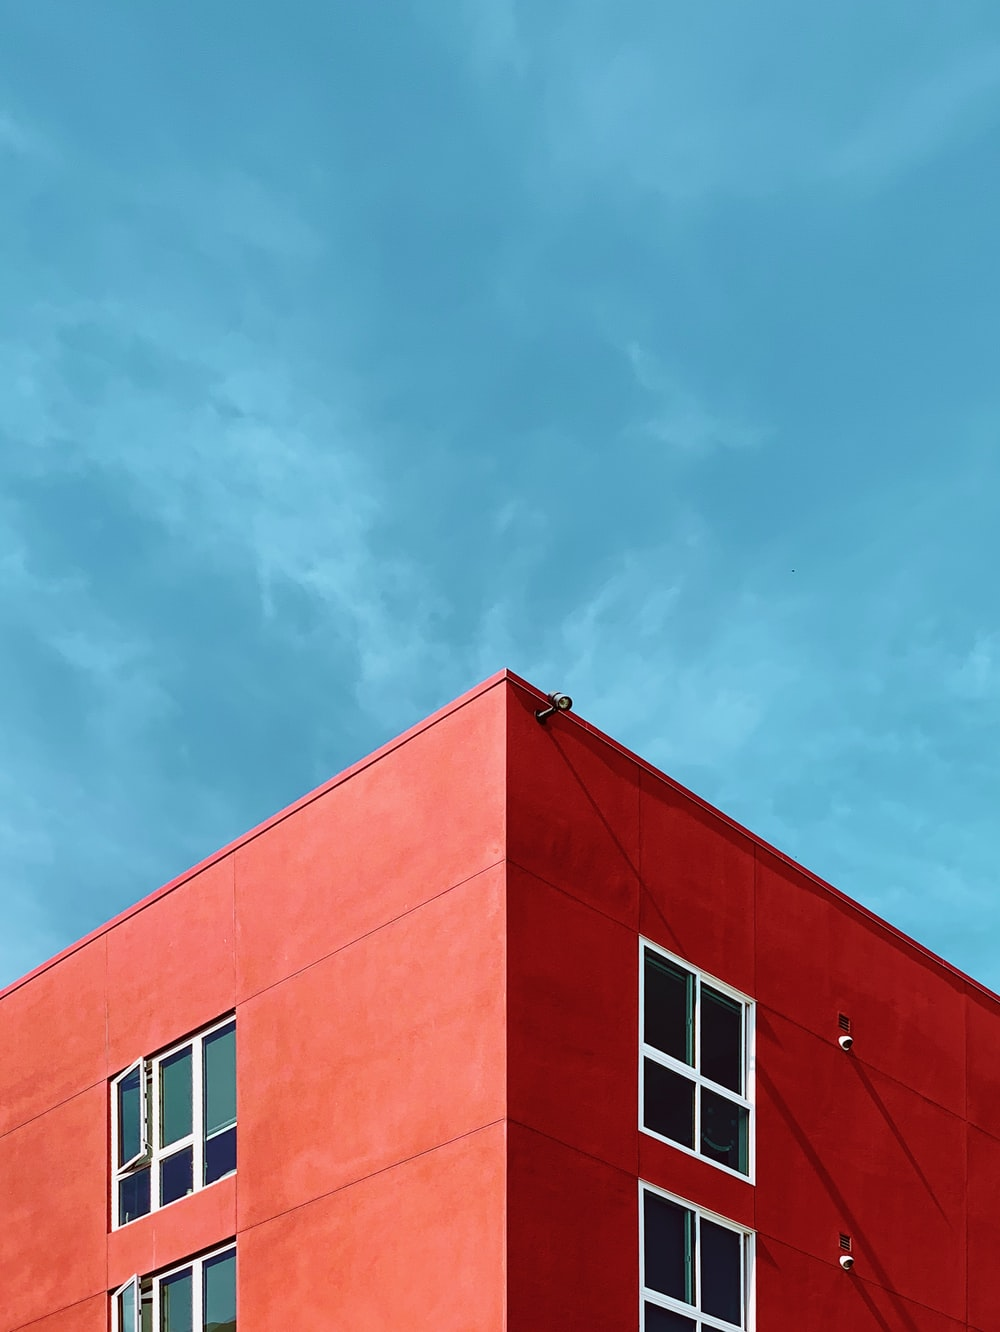 photo of rooftop of red building